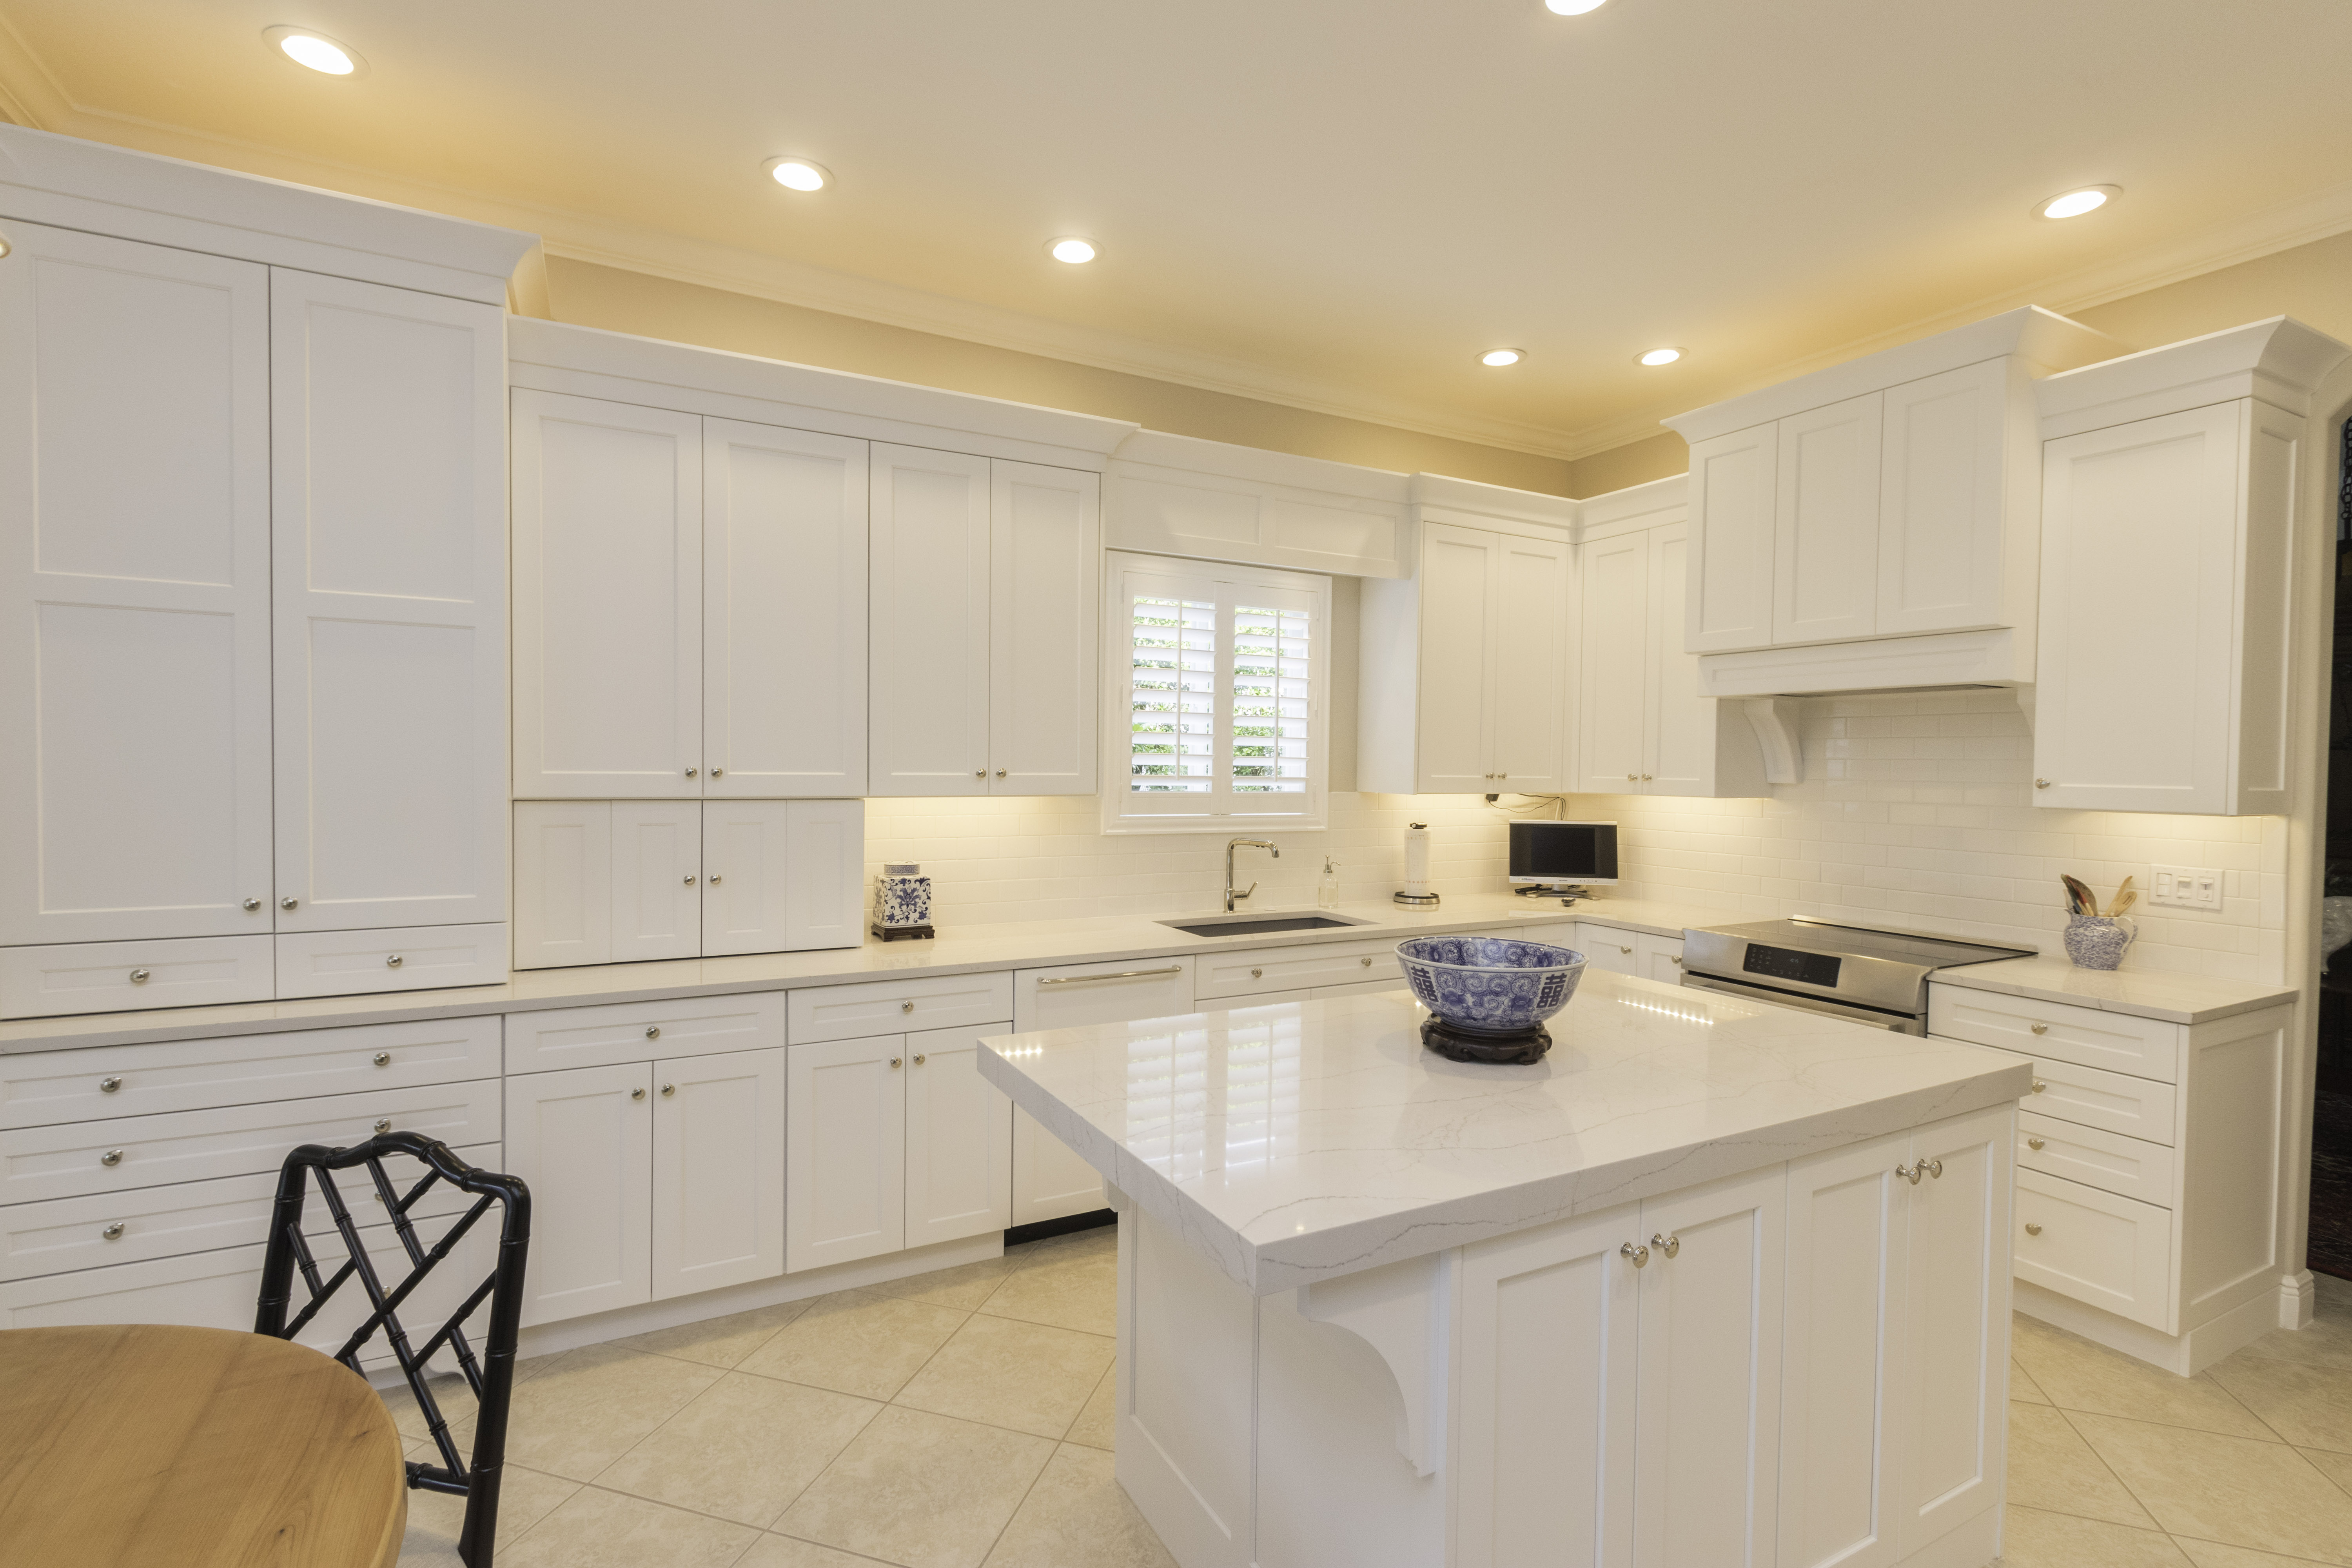 Shadow Wood Kitchen Cabinet Genies Kitchen And Bathroom Remodeling Cape Coral Fl